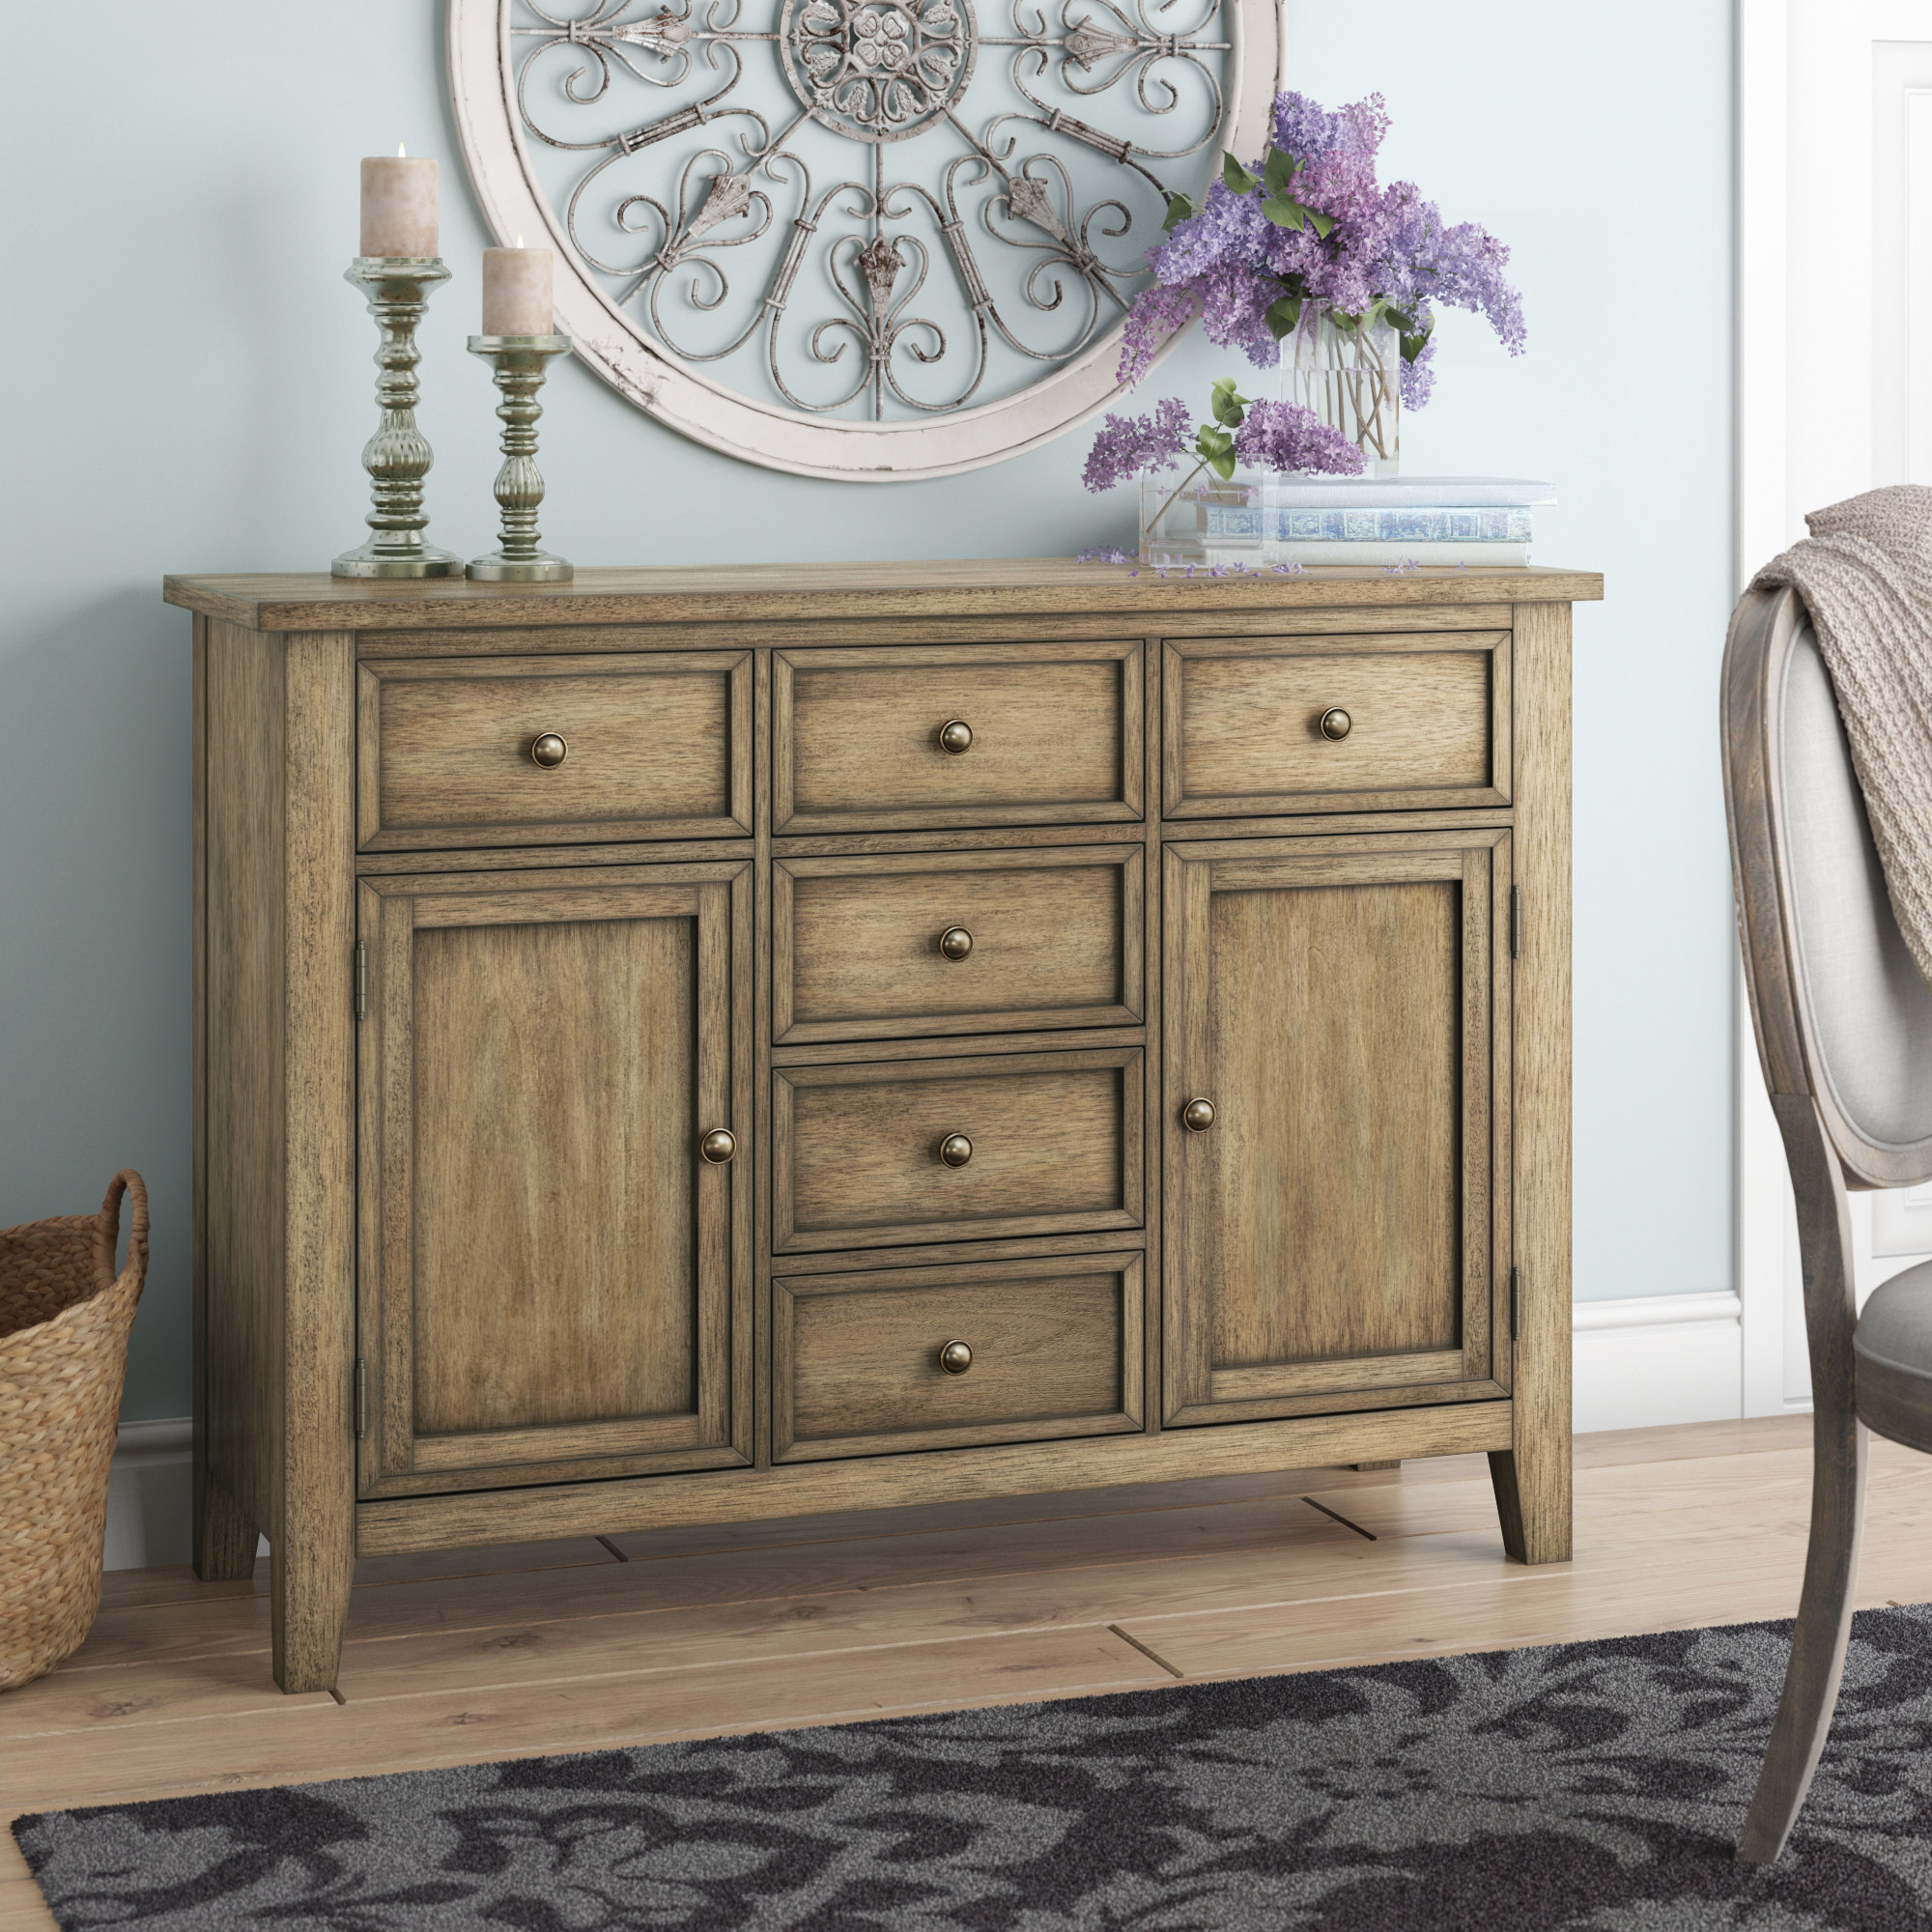 Lark Manor Saguenay Sideboard | Wayfair.ca with regard to Saguenay Sideboards (Image 15 of 30)